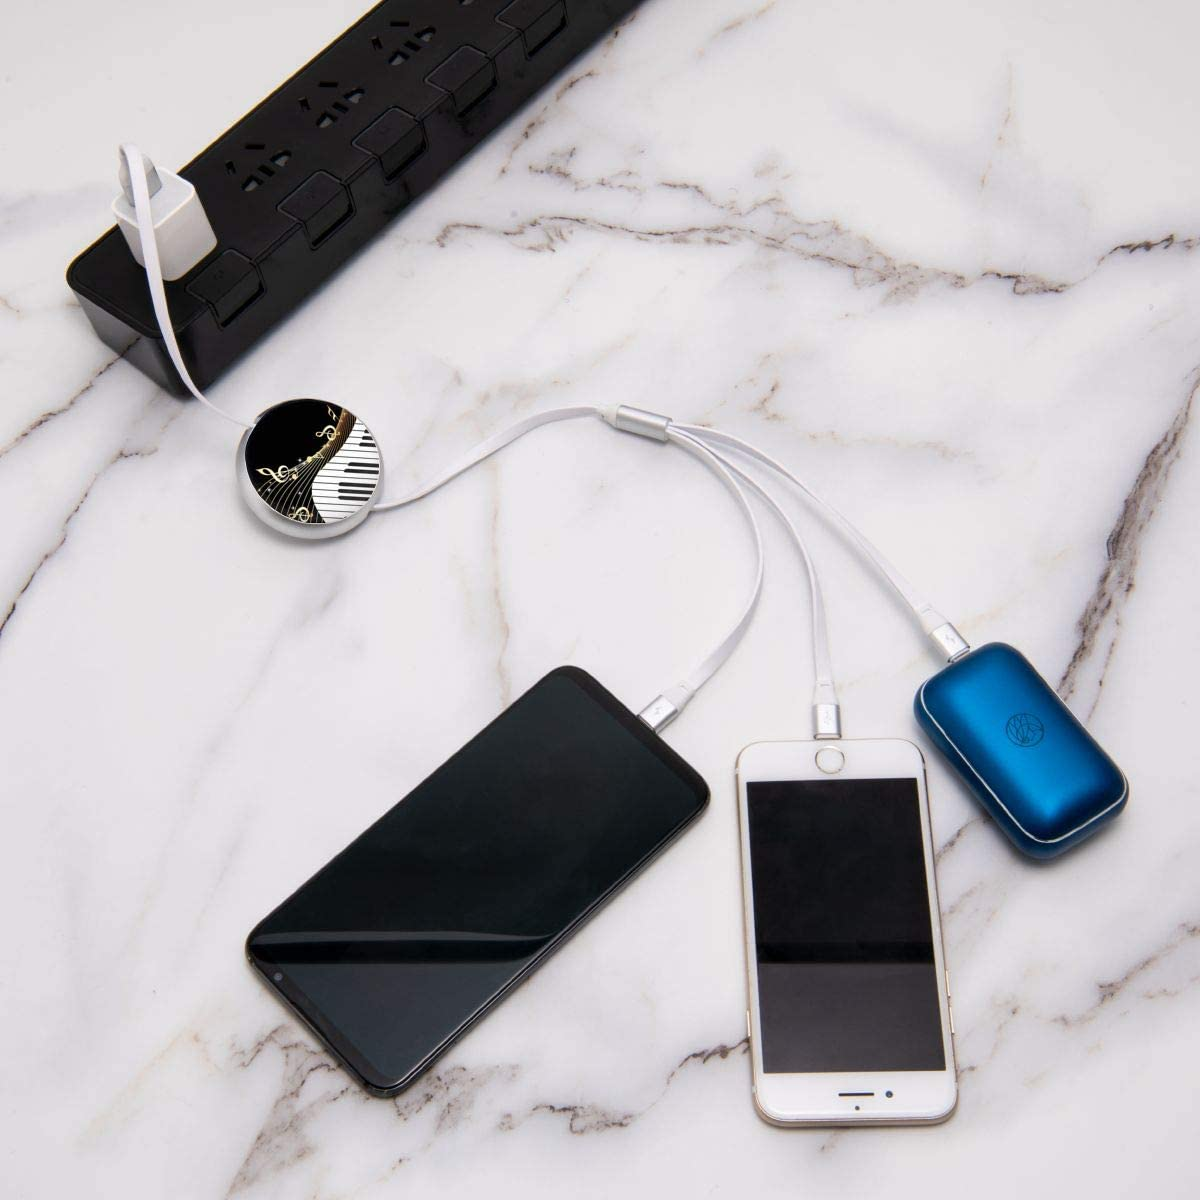 Retractable Multi USB Charging Cable Fast Charger Cord 3 in 1 Black Musical Notes with Type C Micro USB Port Connectors